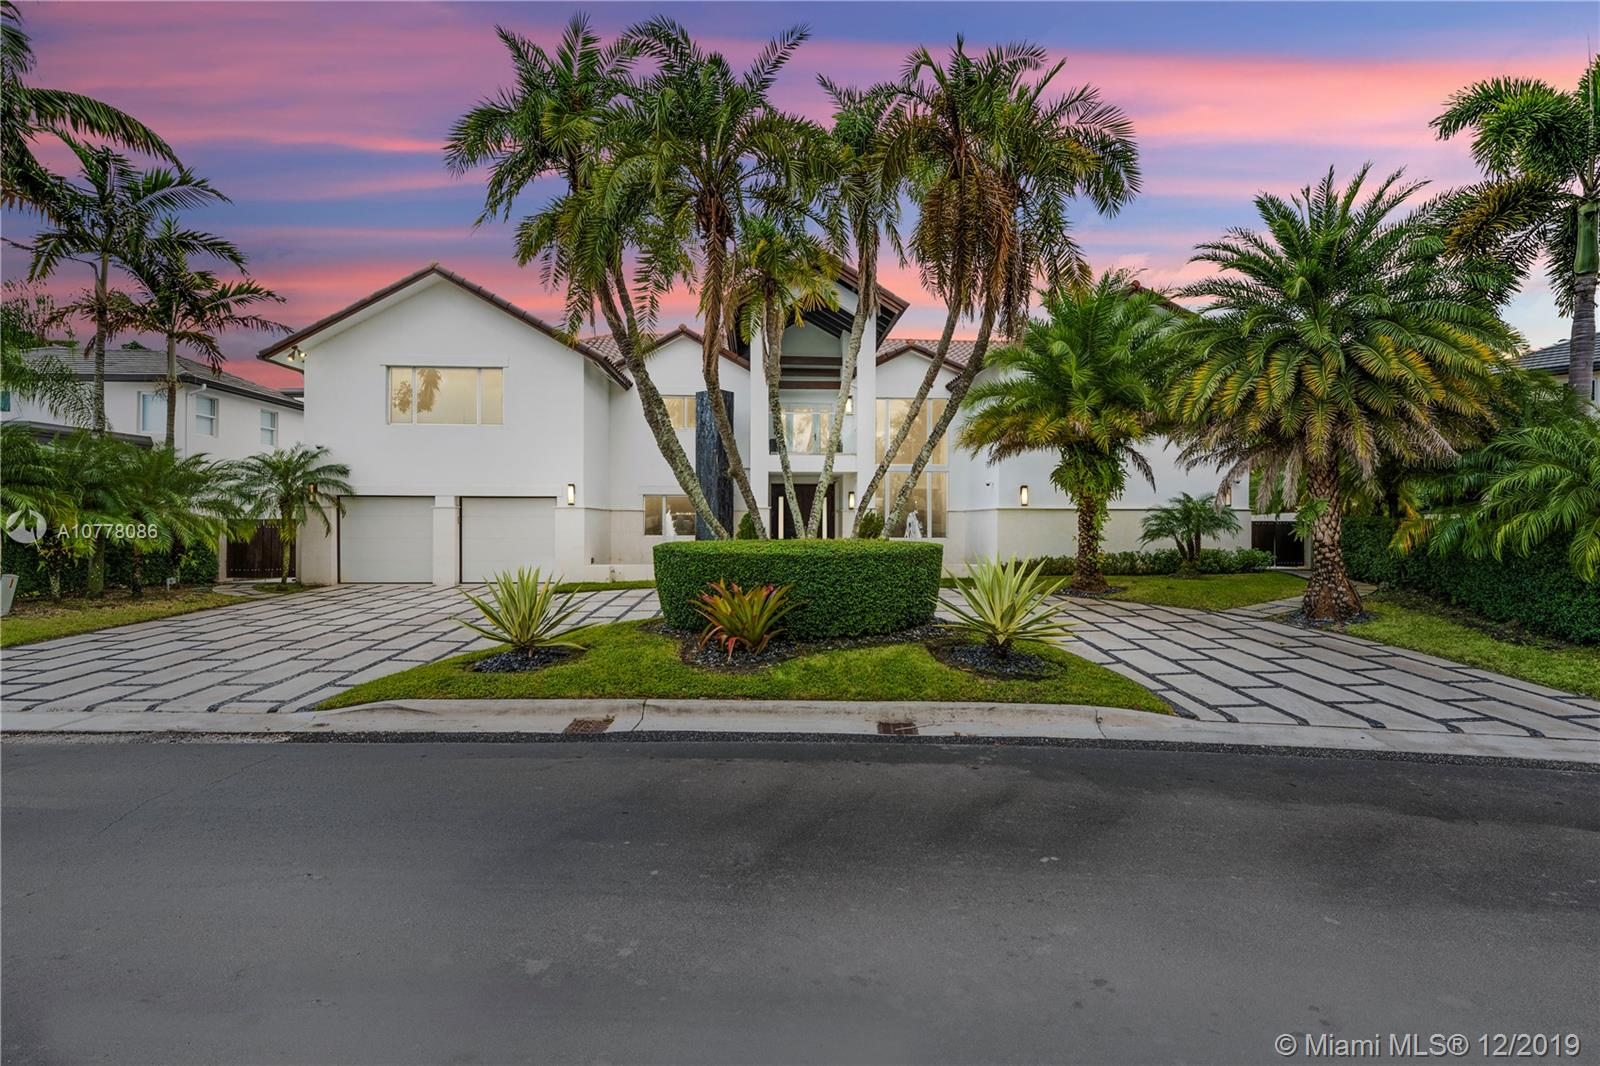 5274 NW 94th Doral Pl - Doral, Florida